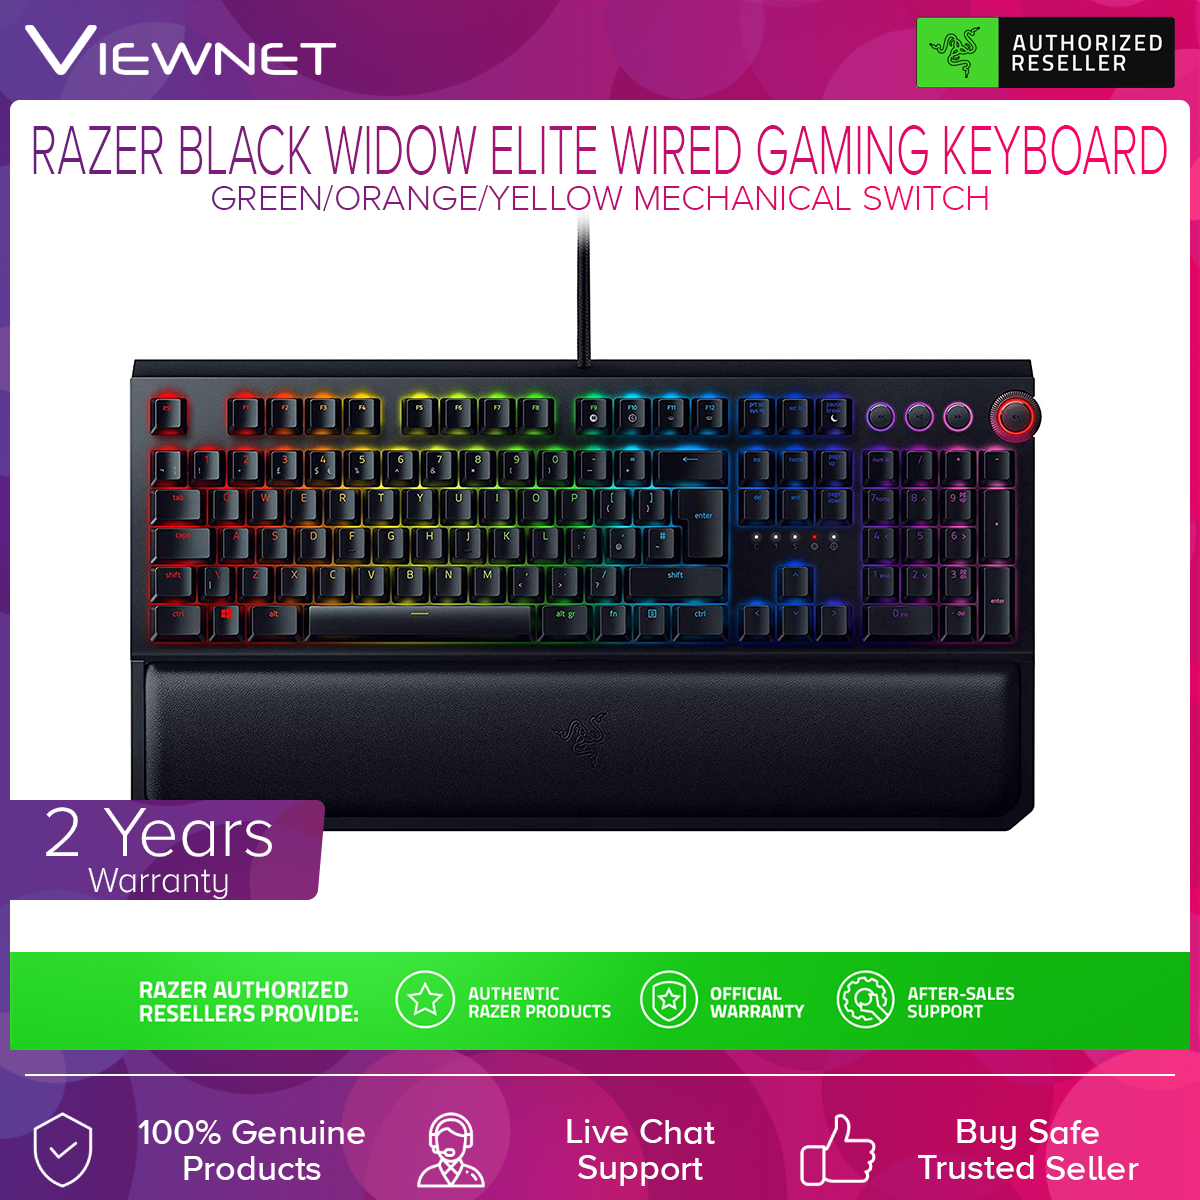 Razer Black Widow Elite Wired Gaming Keyboard (Green/Orange/Yellow Switch)